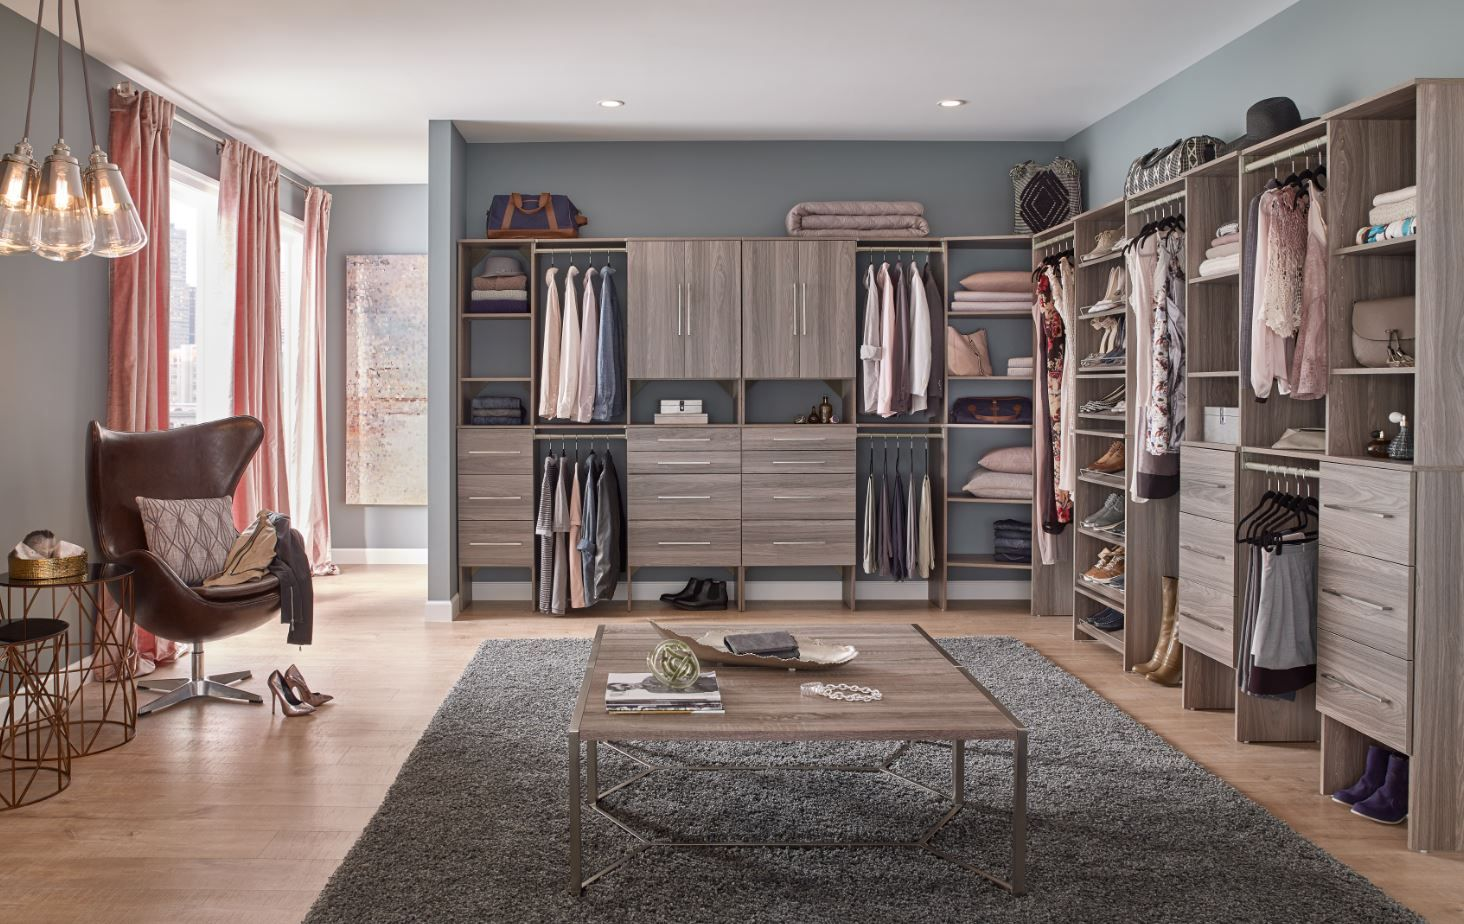 Design your perfect walkin closet with a SuiteSymphony